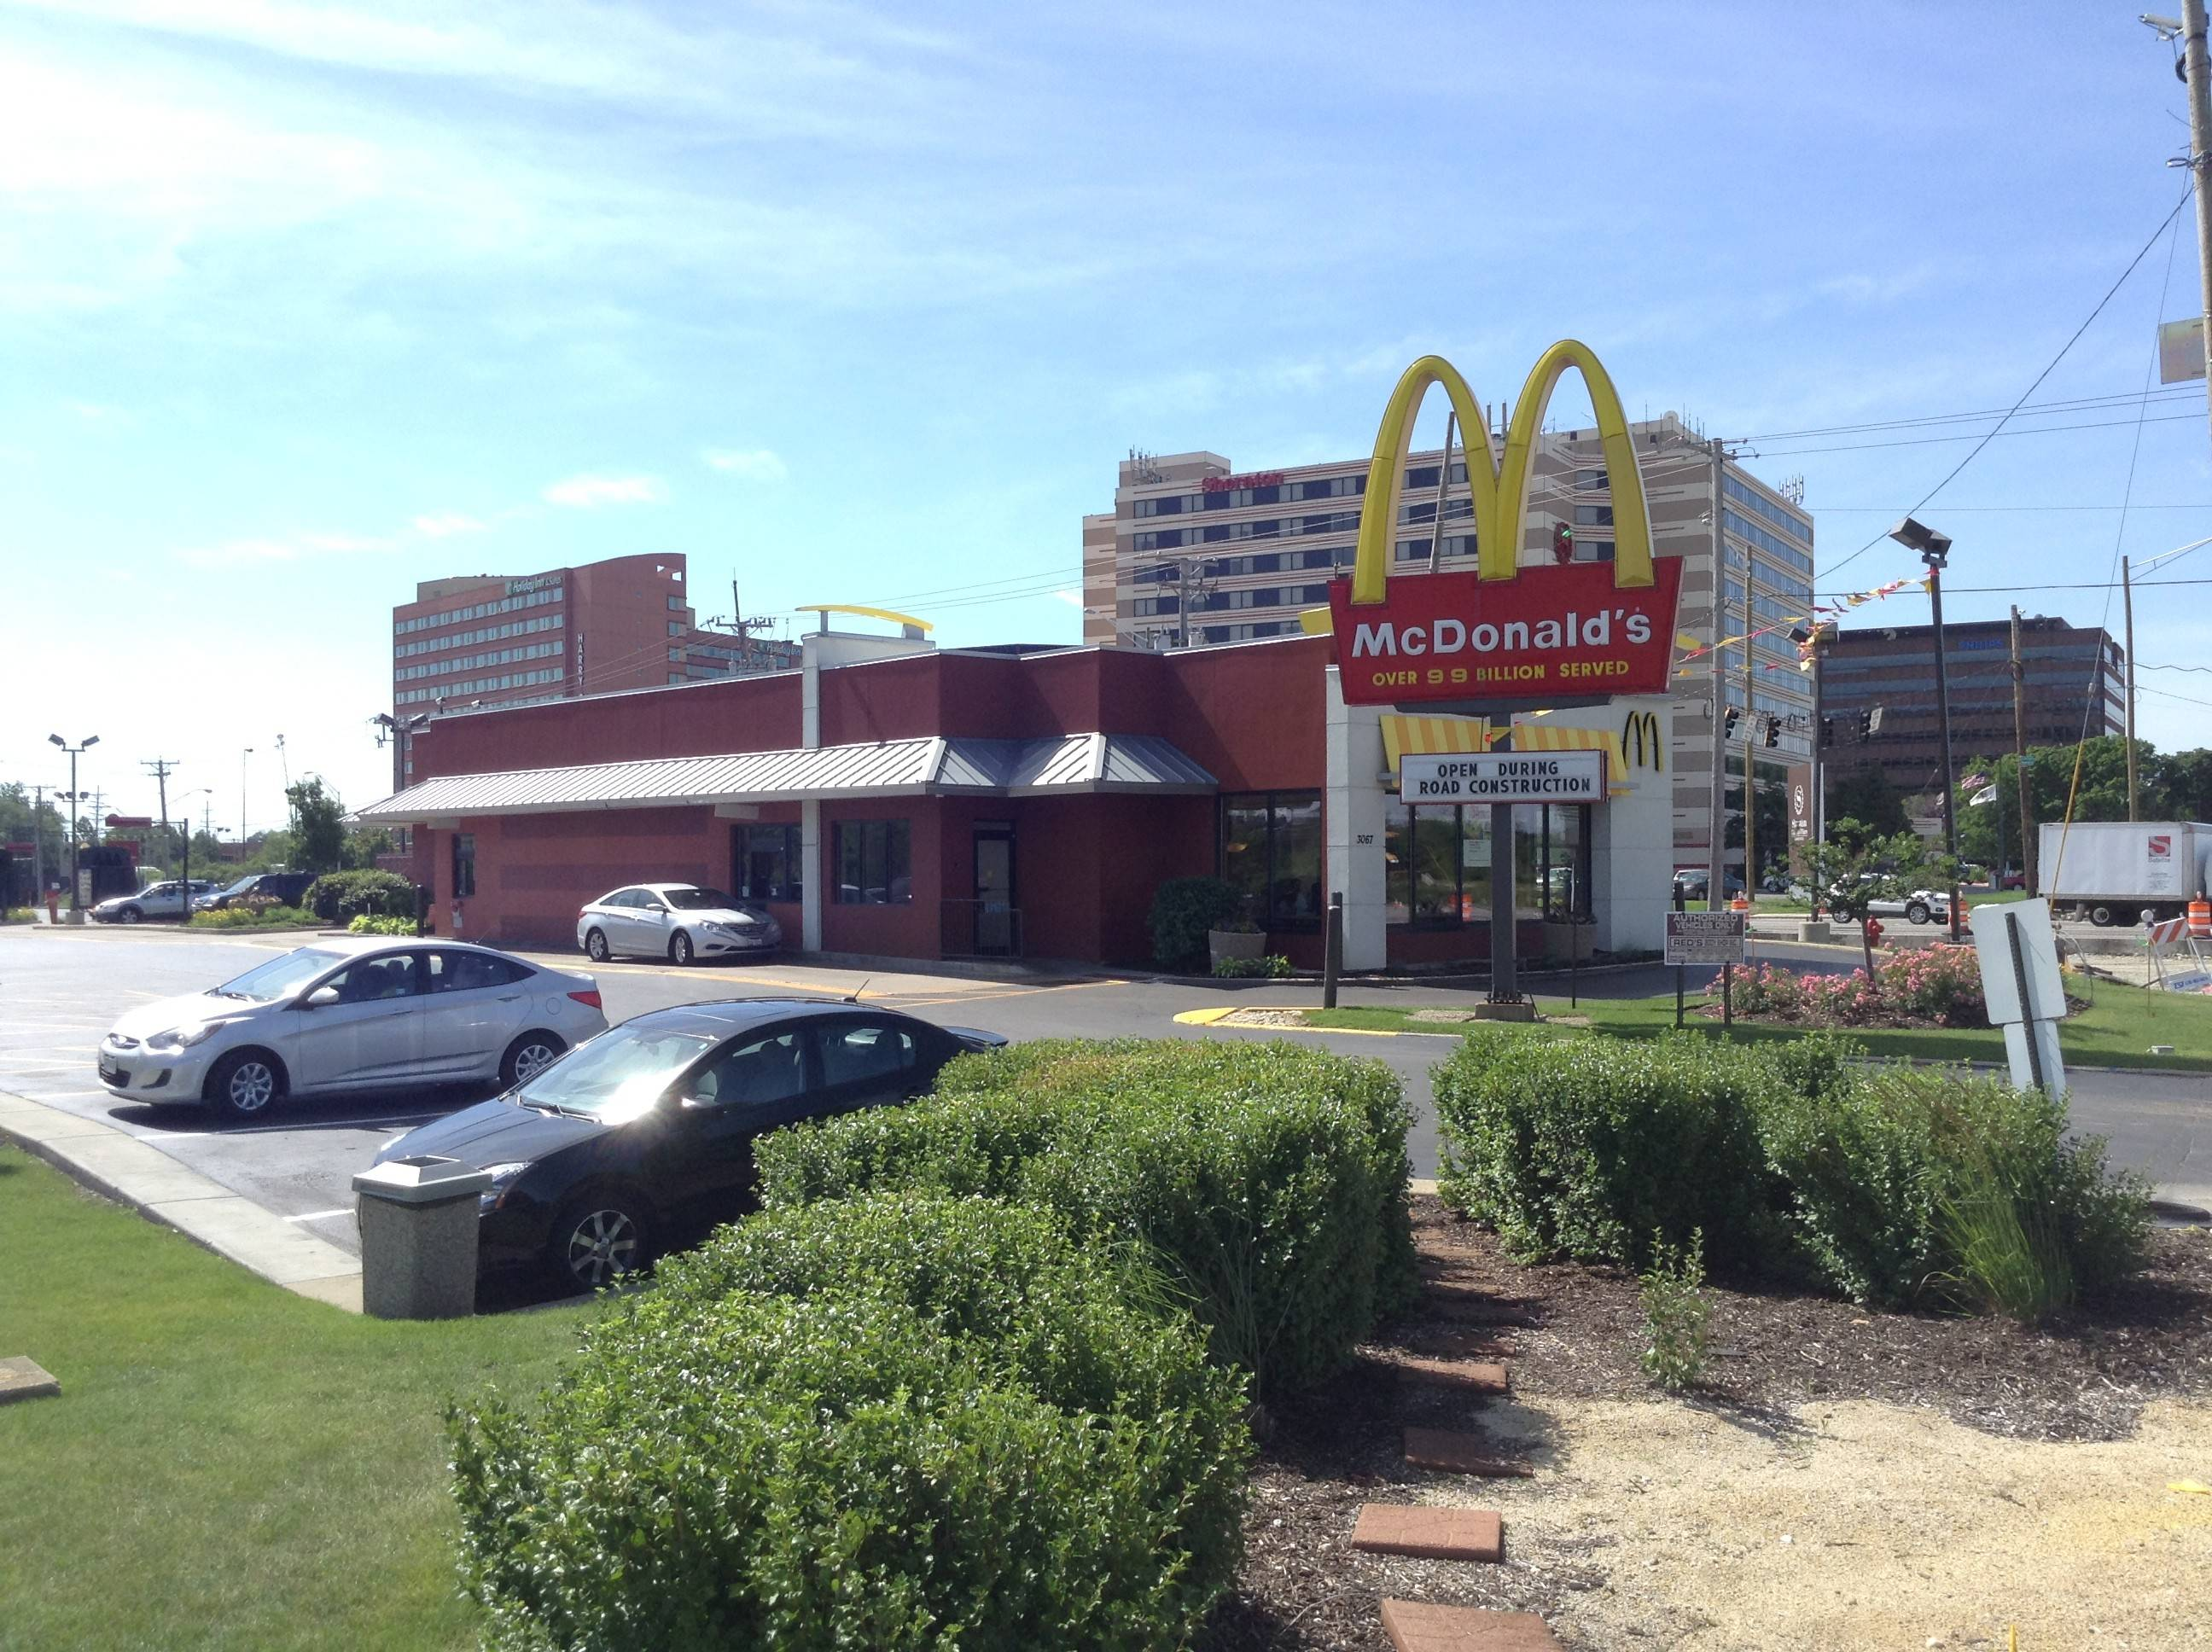 A McDonald's restaurant at the corner of Higgins and Mannheim roads in Des Plaines will be taken out of a tax increment financing district and returned to the tax rolls under a proposal by city officials.